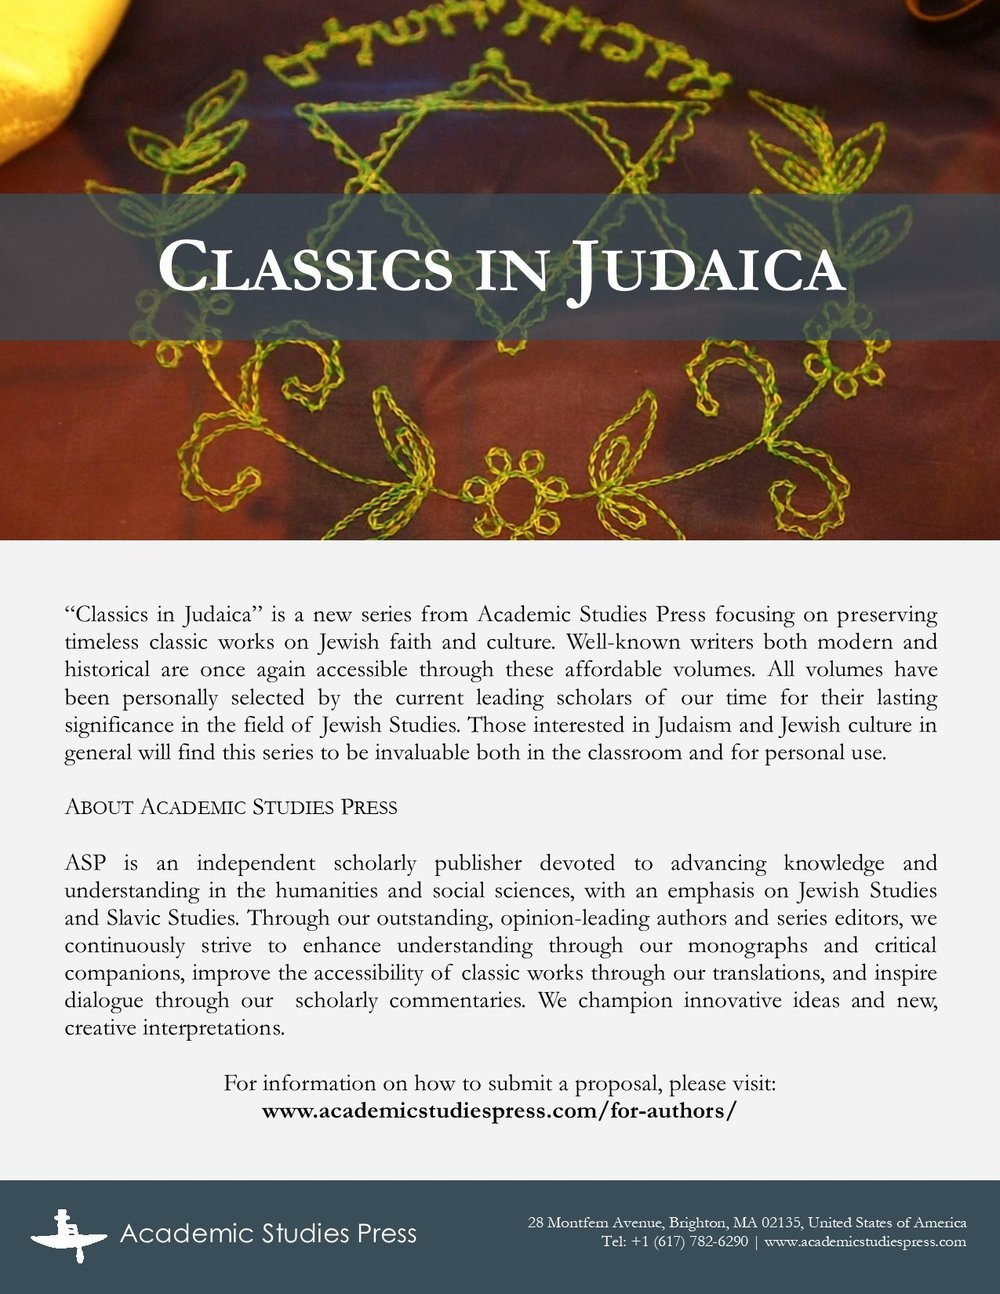 Classics in Judaica Flyer.jpg